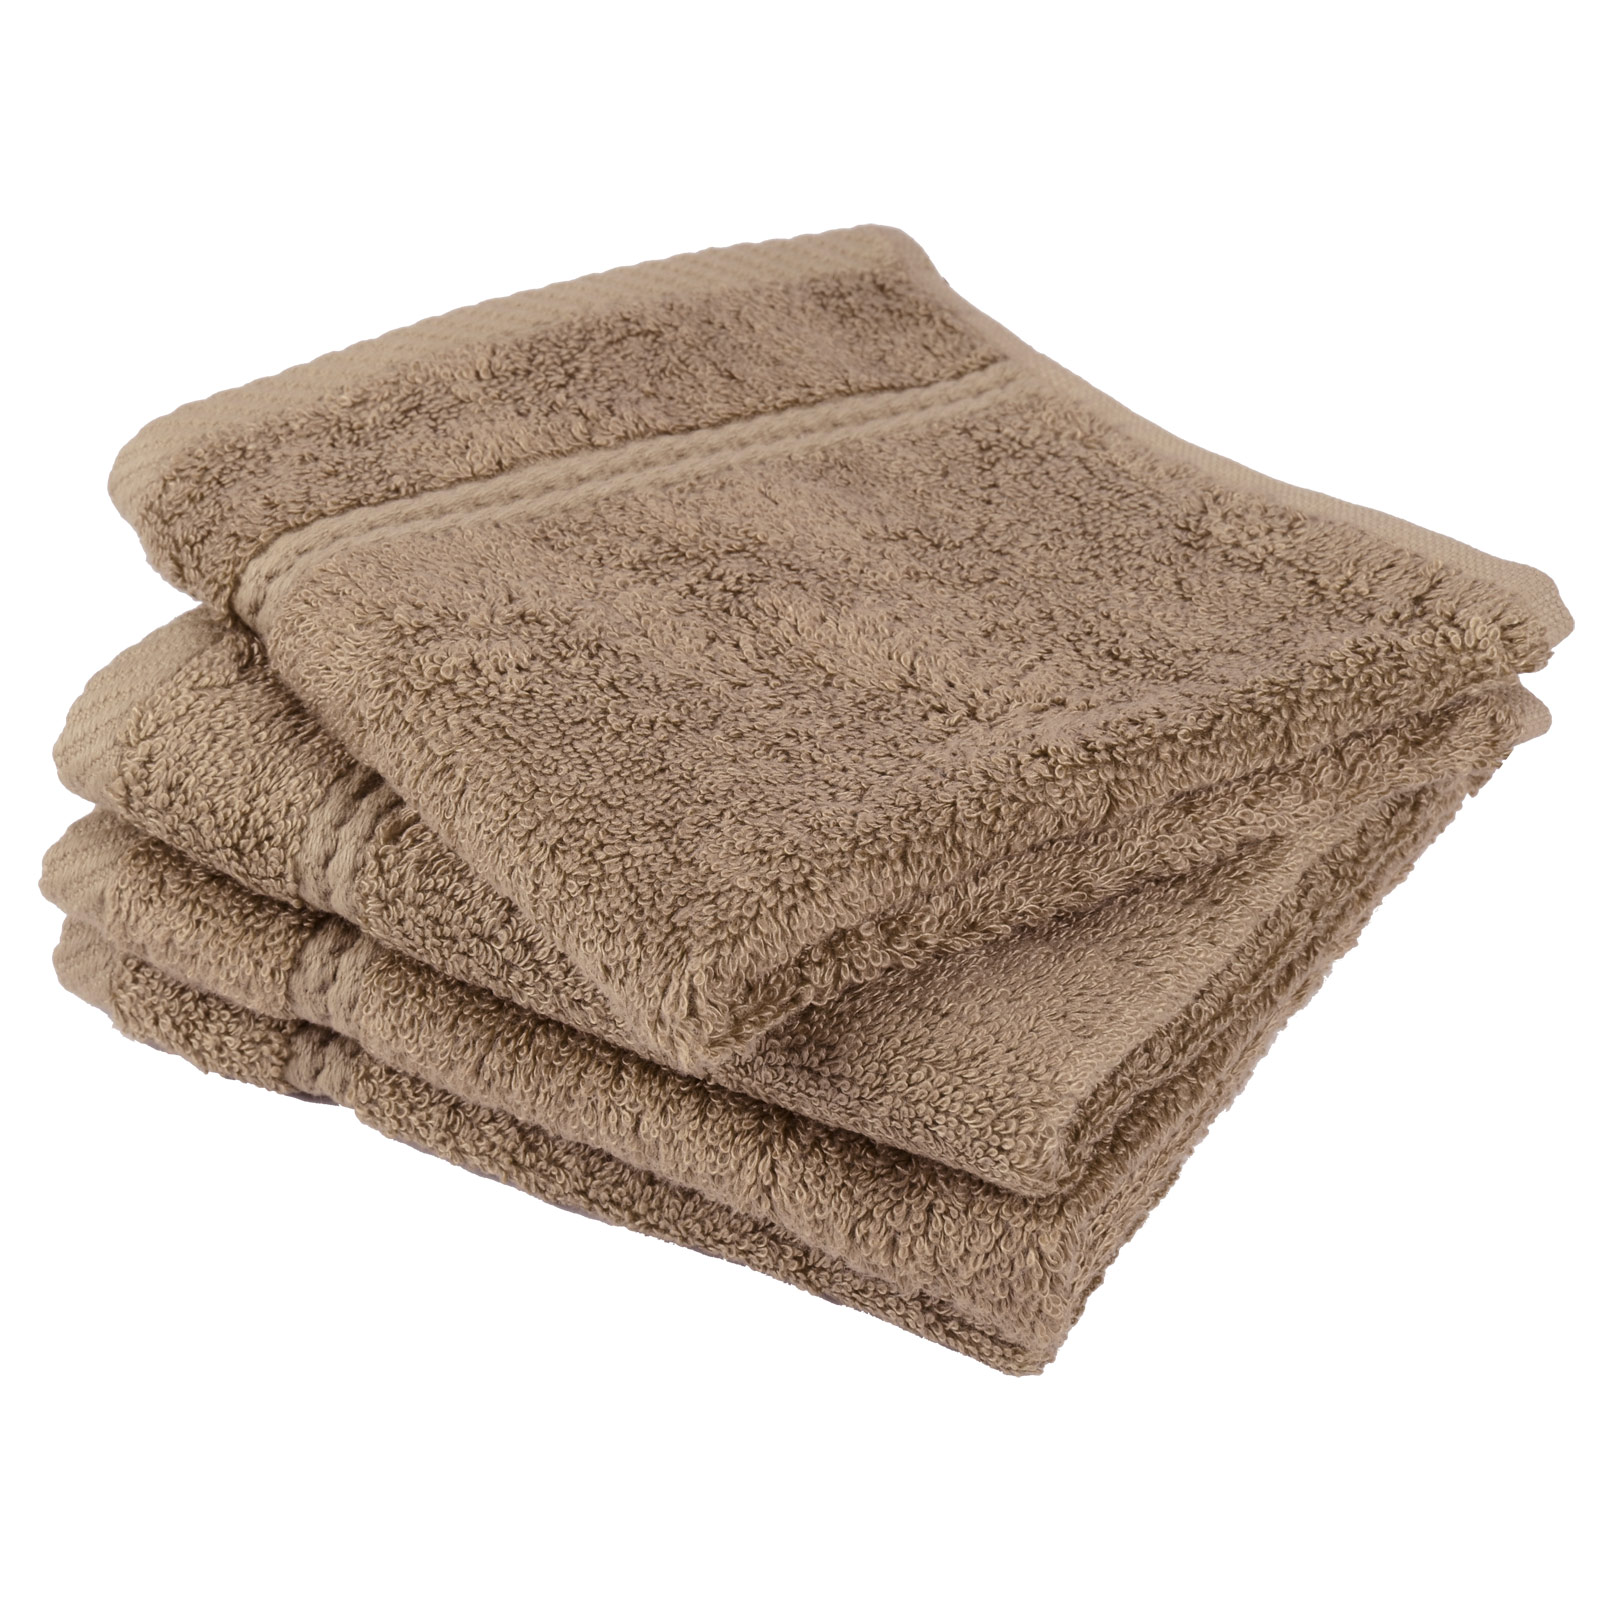 Bathroom Linen Bath Sheet Bath Towel Hand Towels Face